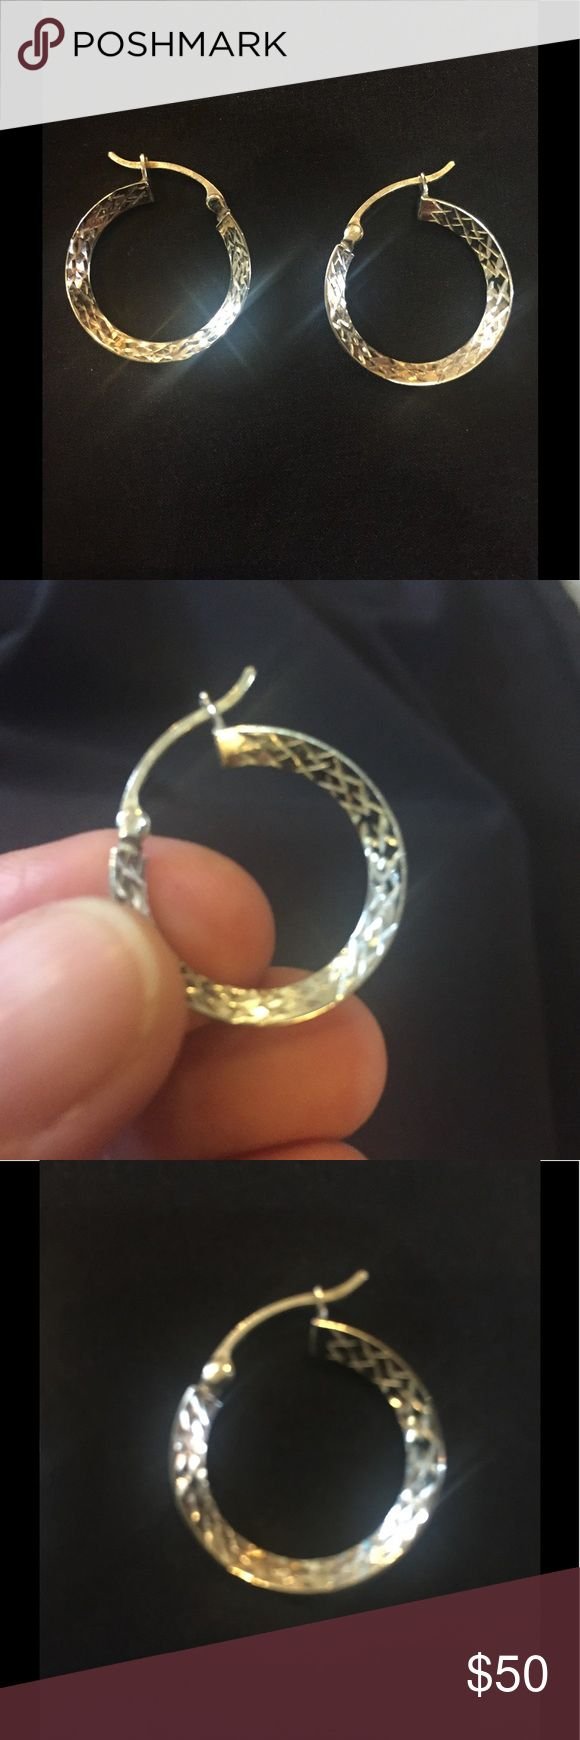 Gorgeous 14k White Gold Small Hoop Earrings!!! EUC!!! 14k White Gold Small Hoop Earrings! Crisscross Etching on one side!  Purchased from Zales Northpark Centre, Dallas! Only worn a couple of times! 🎆🎆🎆 Zales Jewelry Earrings